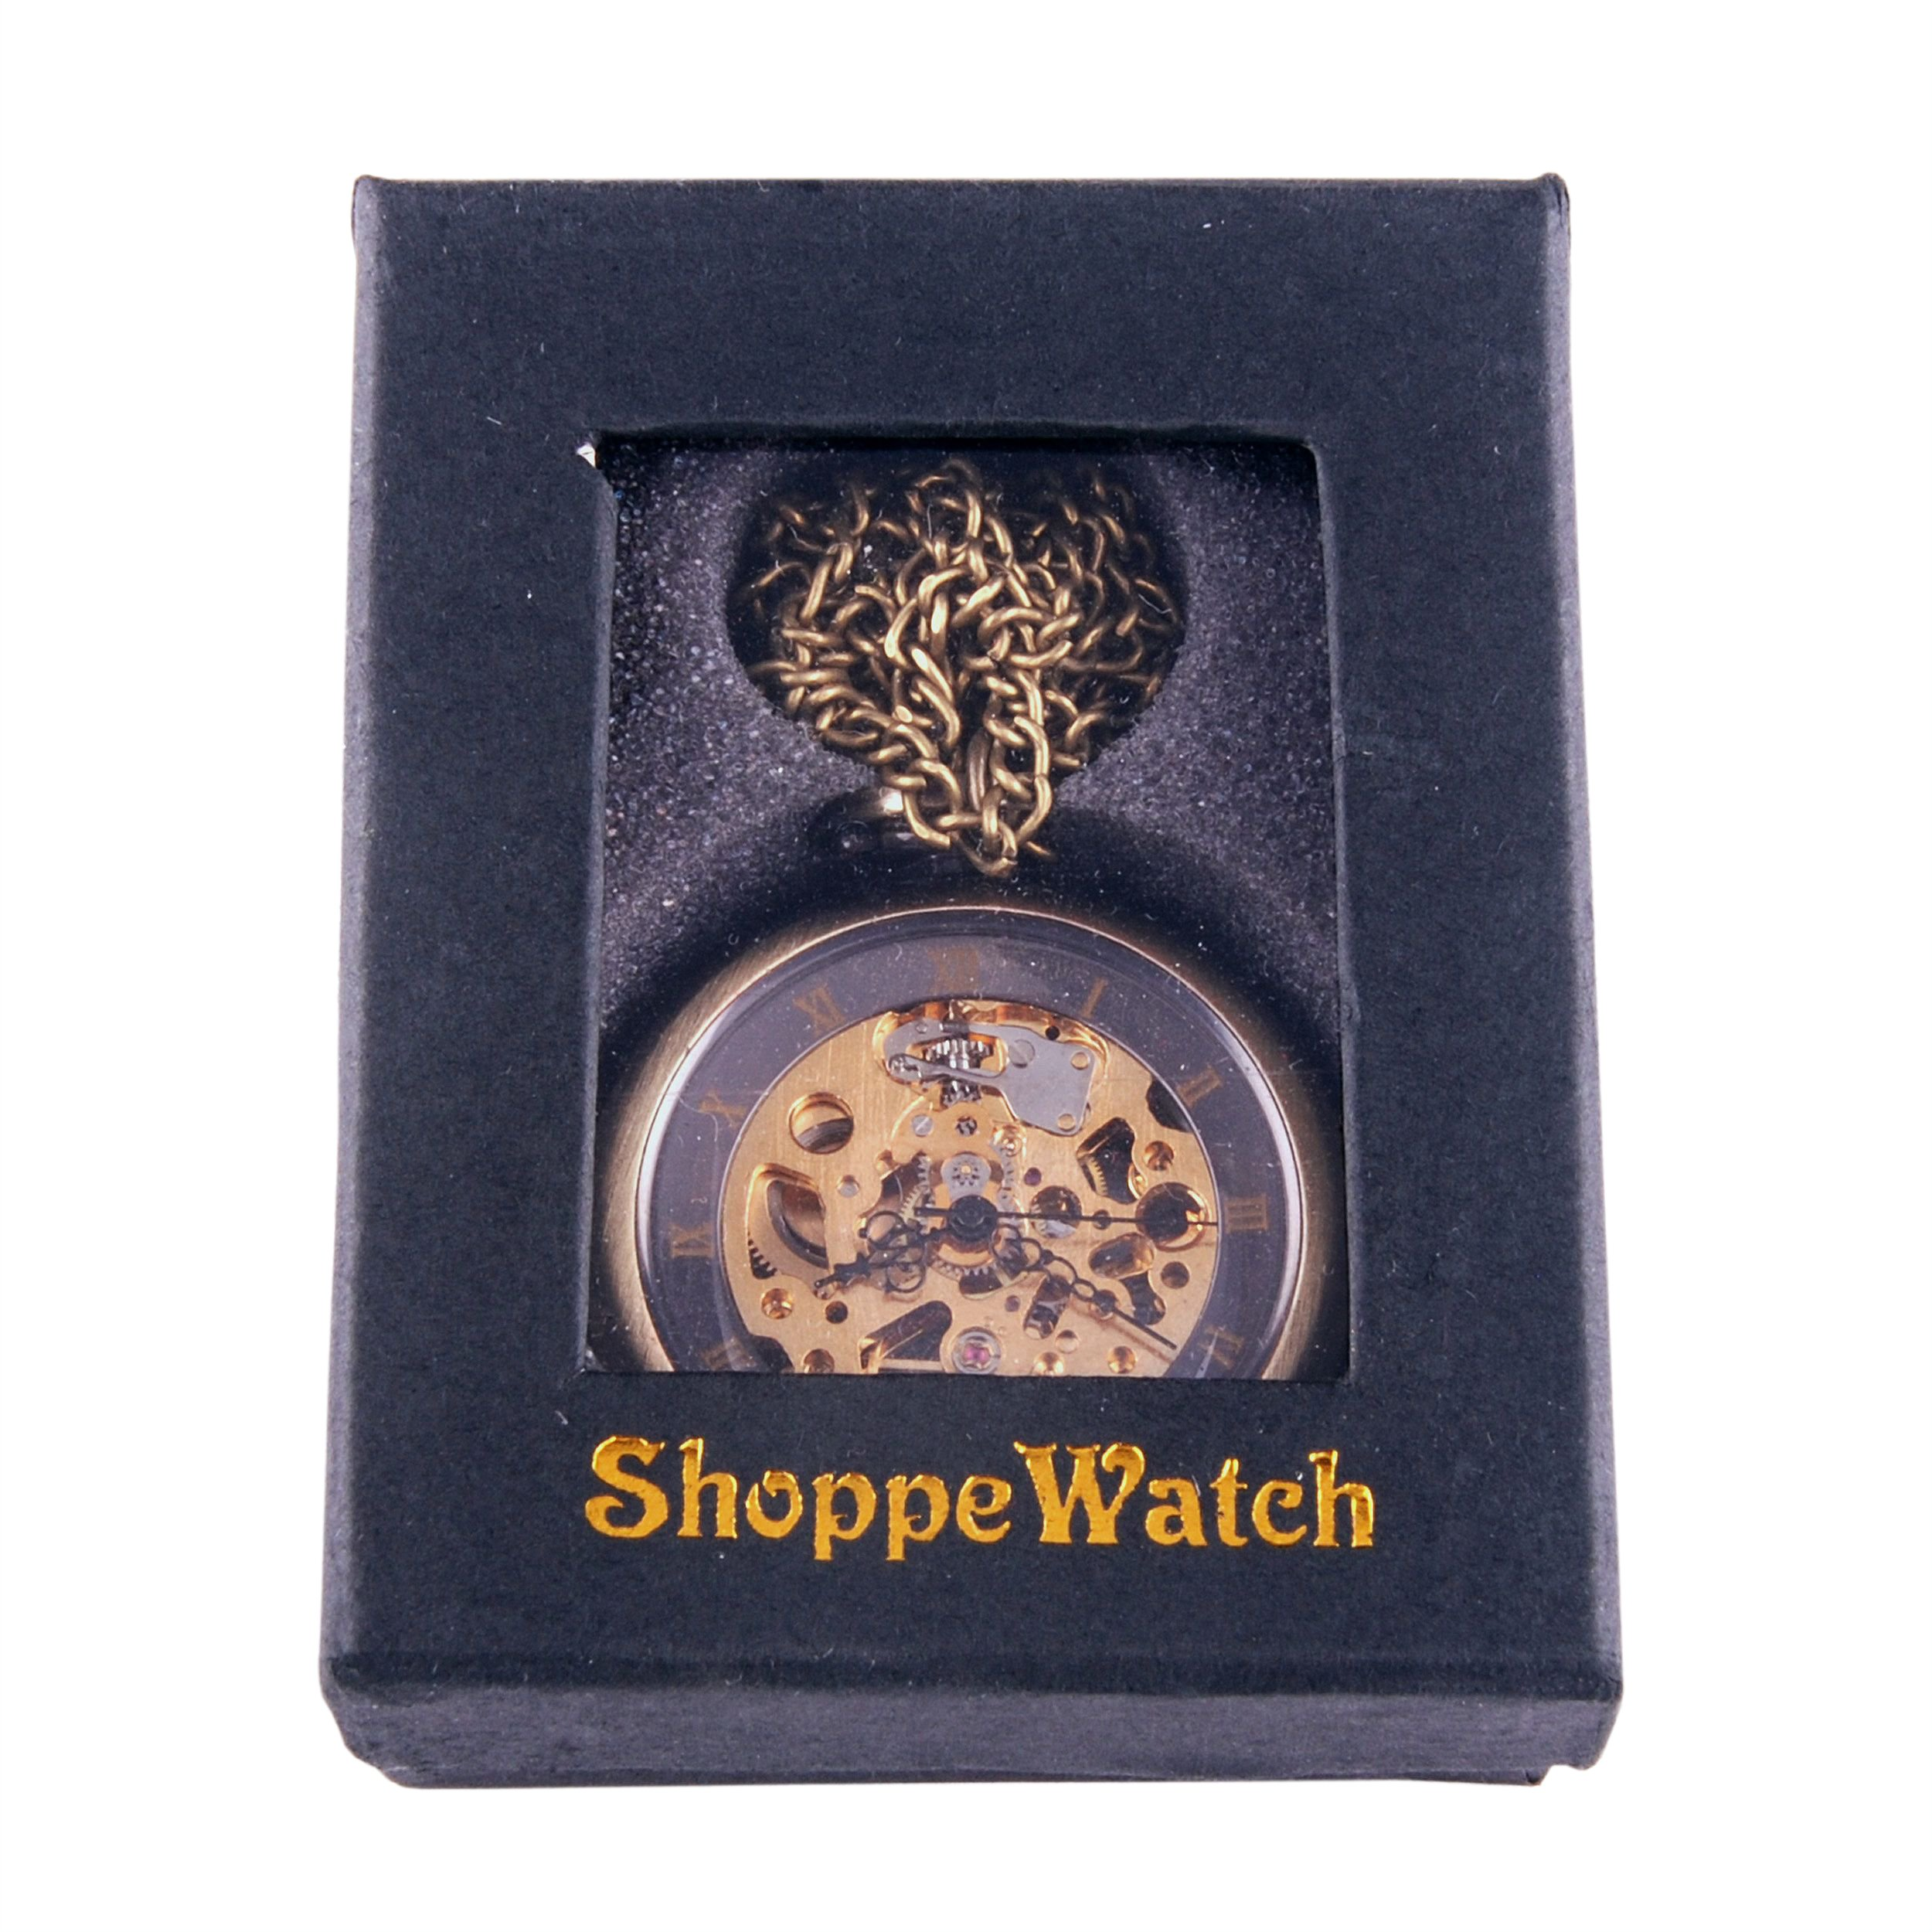 ShoppeWatch Hand Wind Mechanical Skeleton Pocket Watch Open Face Steampunk Style With Chain - PW12 by ShoppeWatch (Image #6)